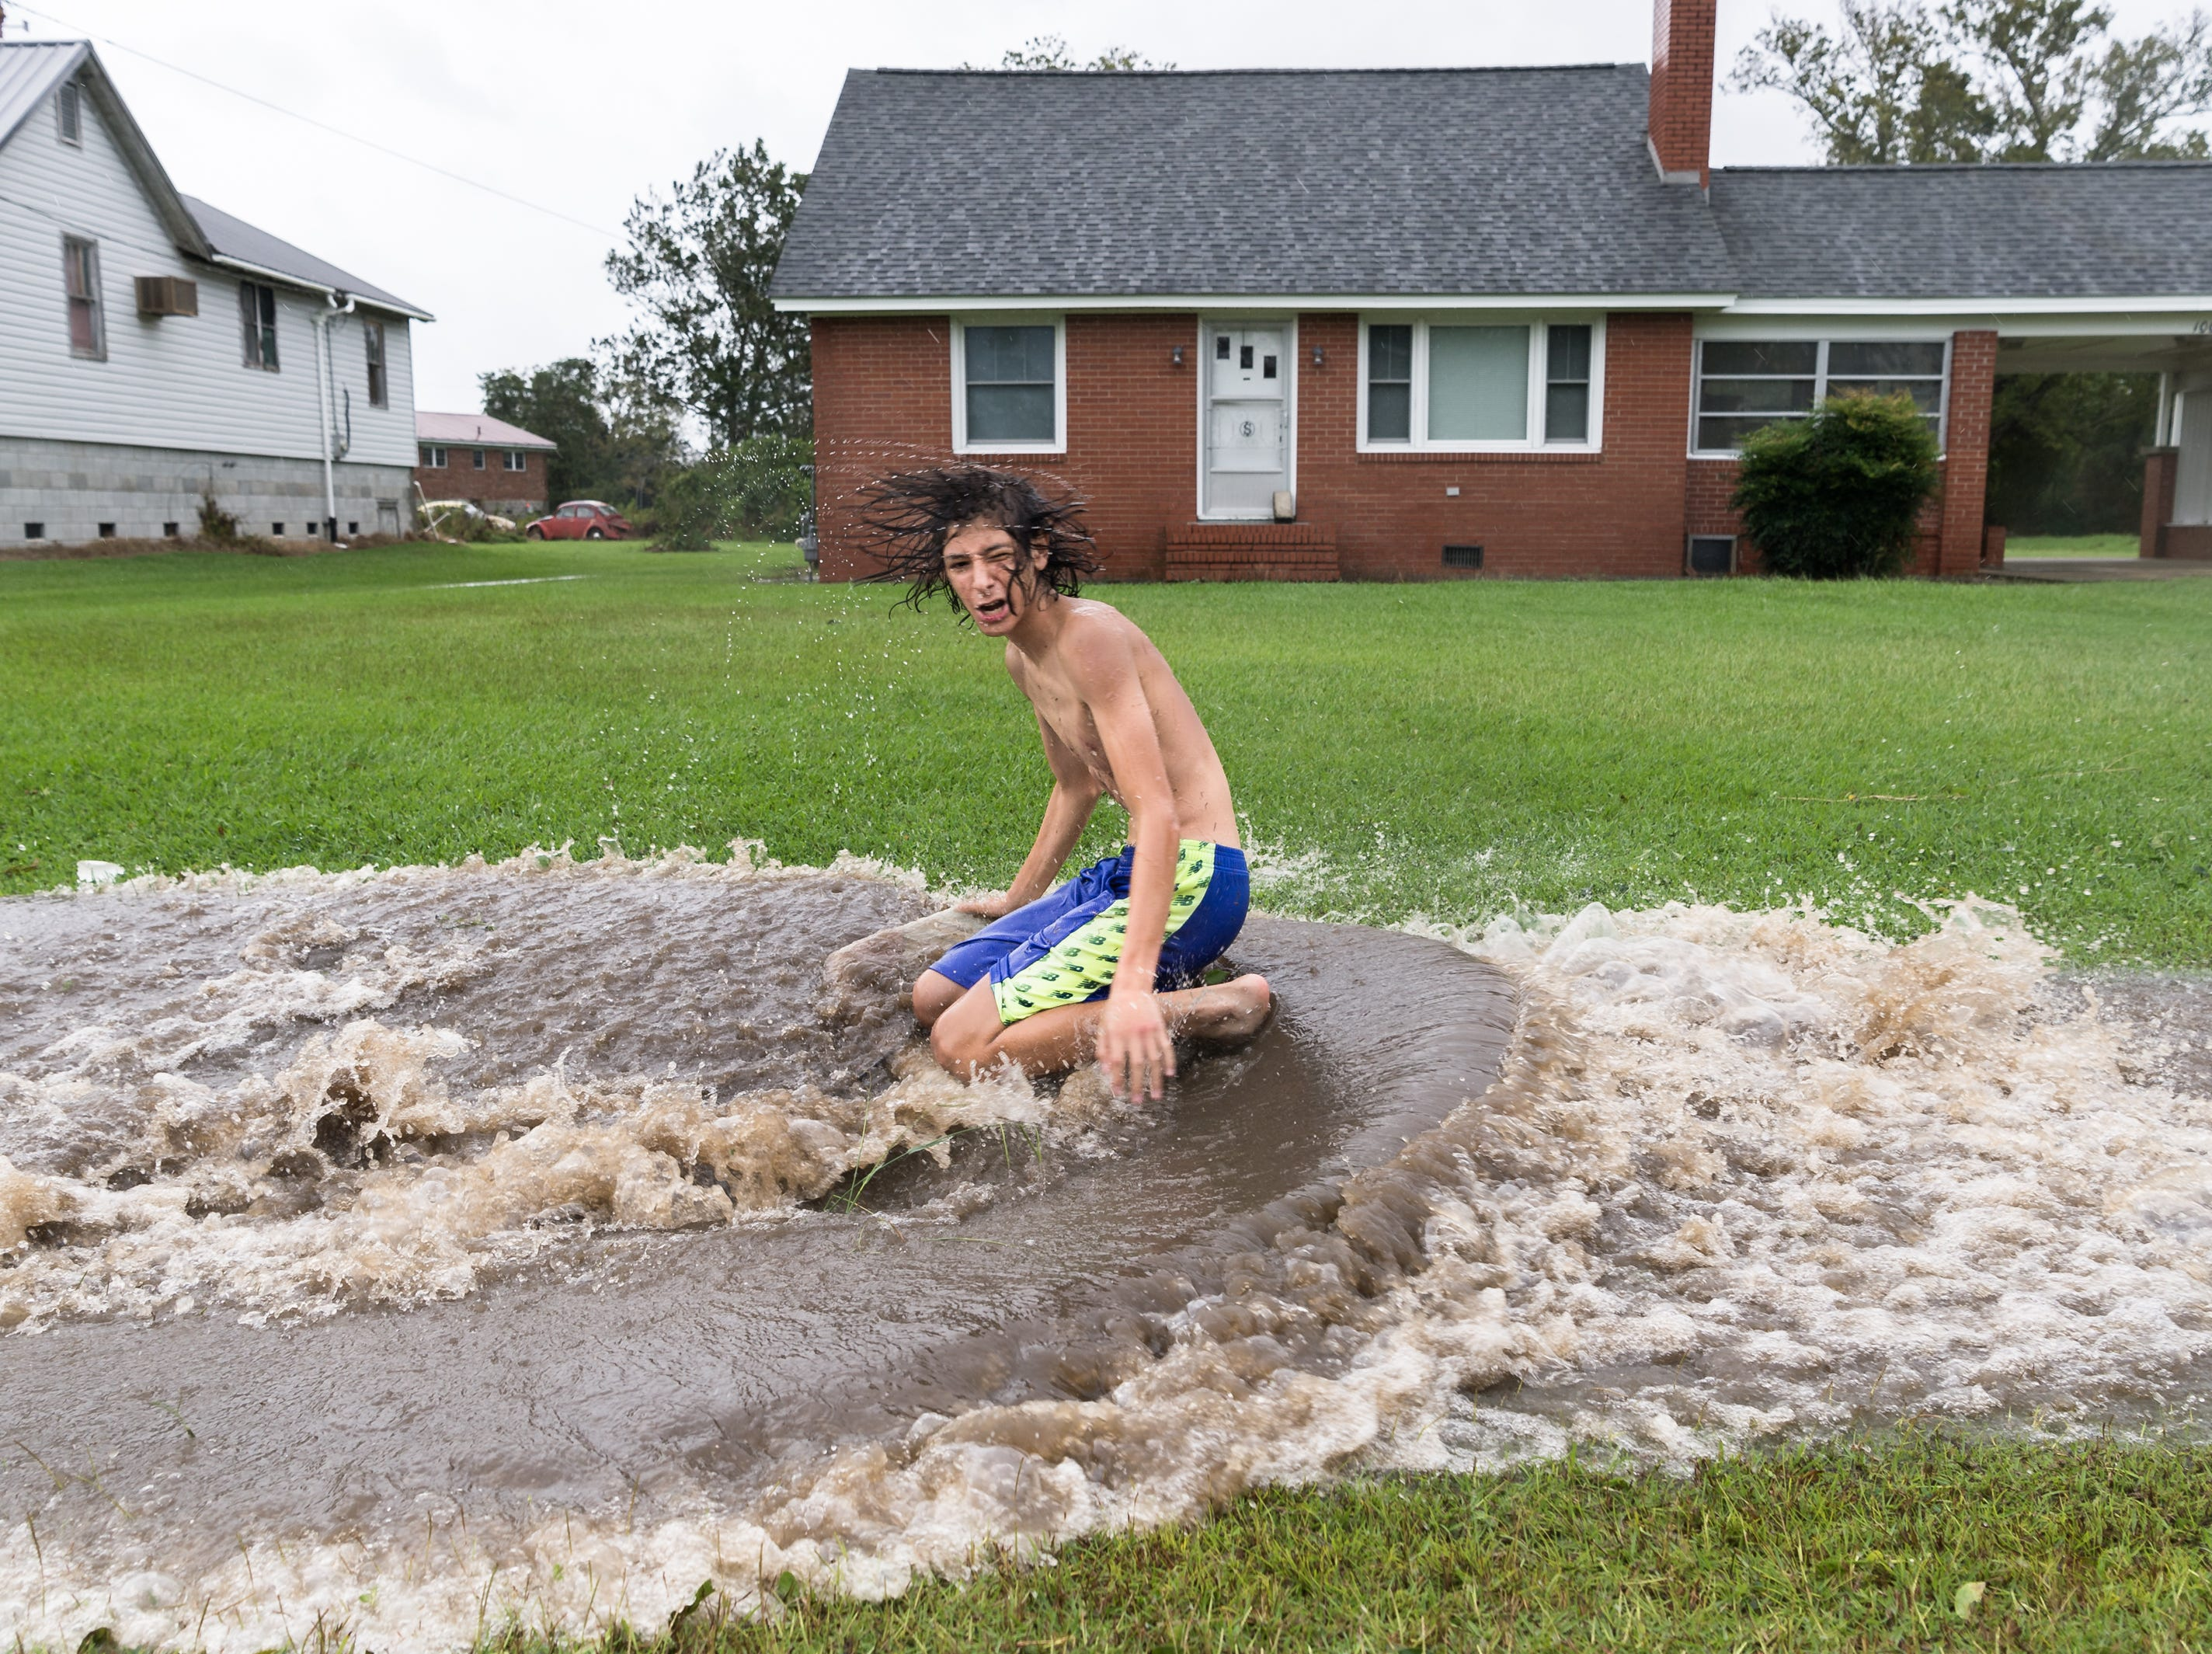 Fortino Beltran, 14, splashes into a large puddle while surfing on Main Street in Swan Quarter, N.C Sept. 14, 2018, after Hurricane Florence made landfall.